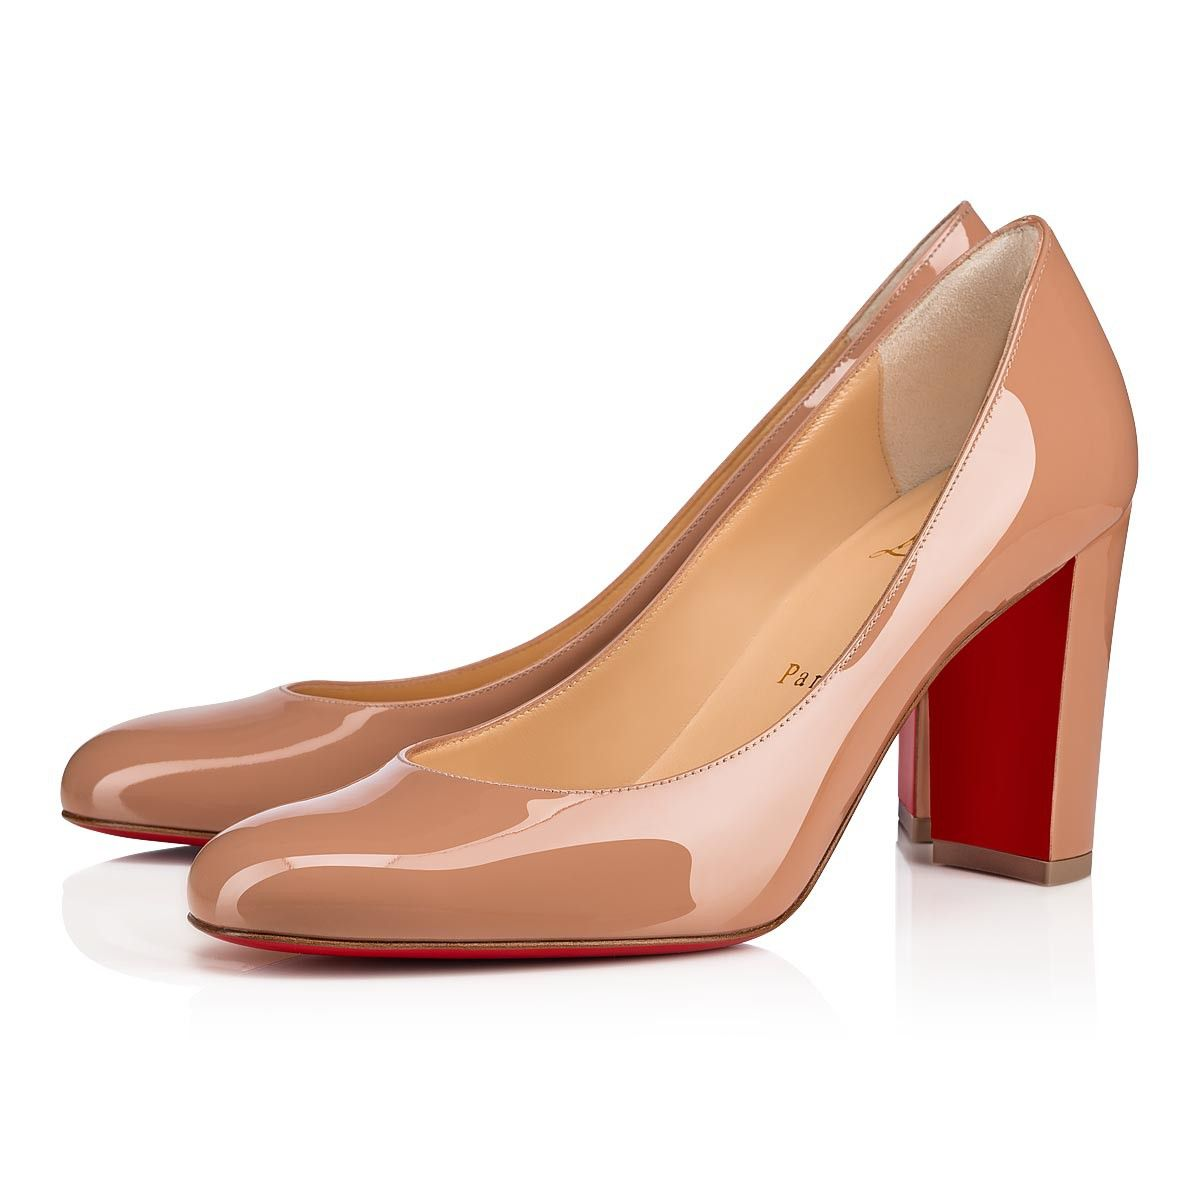 cfc068b9e15d Lady Gena 85 Nude Patent Leather - Women Shoes - Christian Louboutin